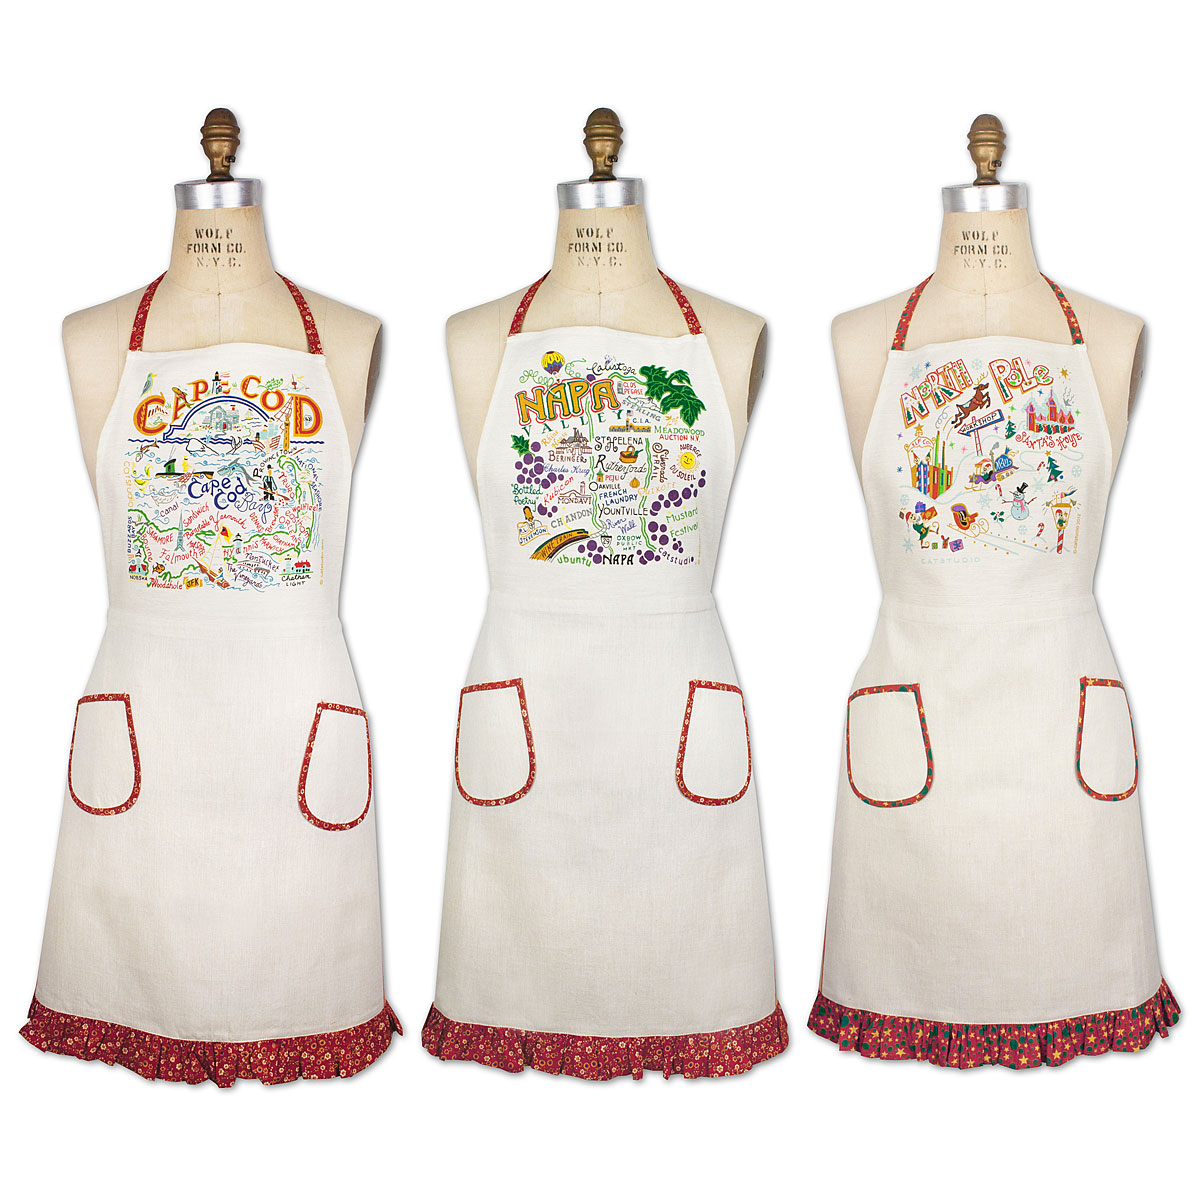 Kitchen Apron : REGION APRONS Regional Printed Kitchen Apron UncommonGoods